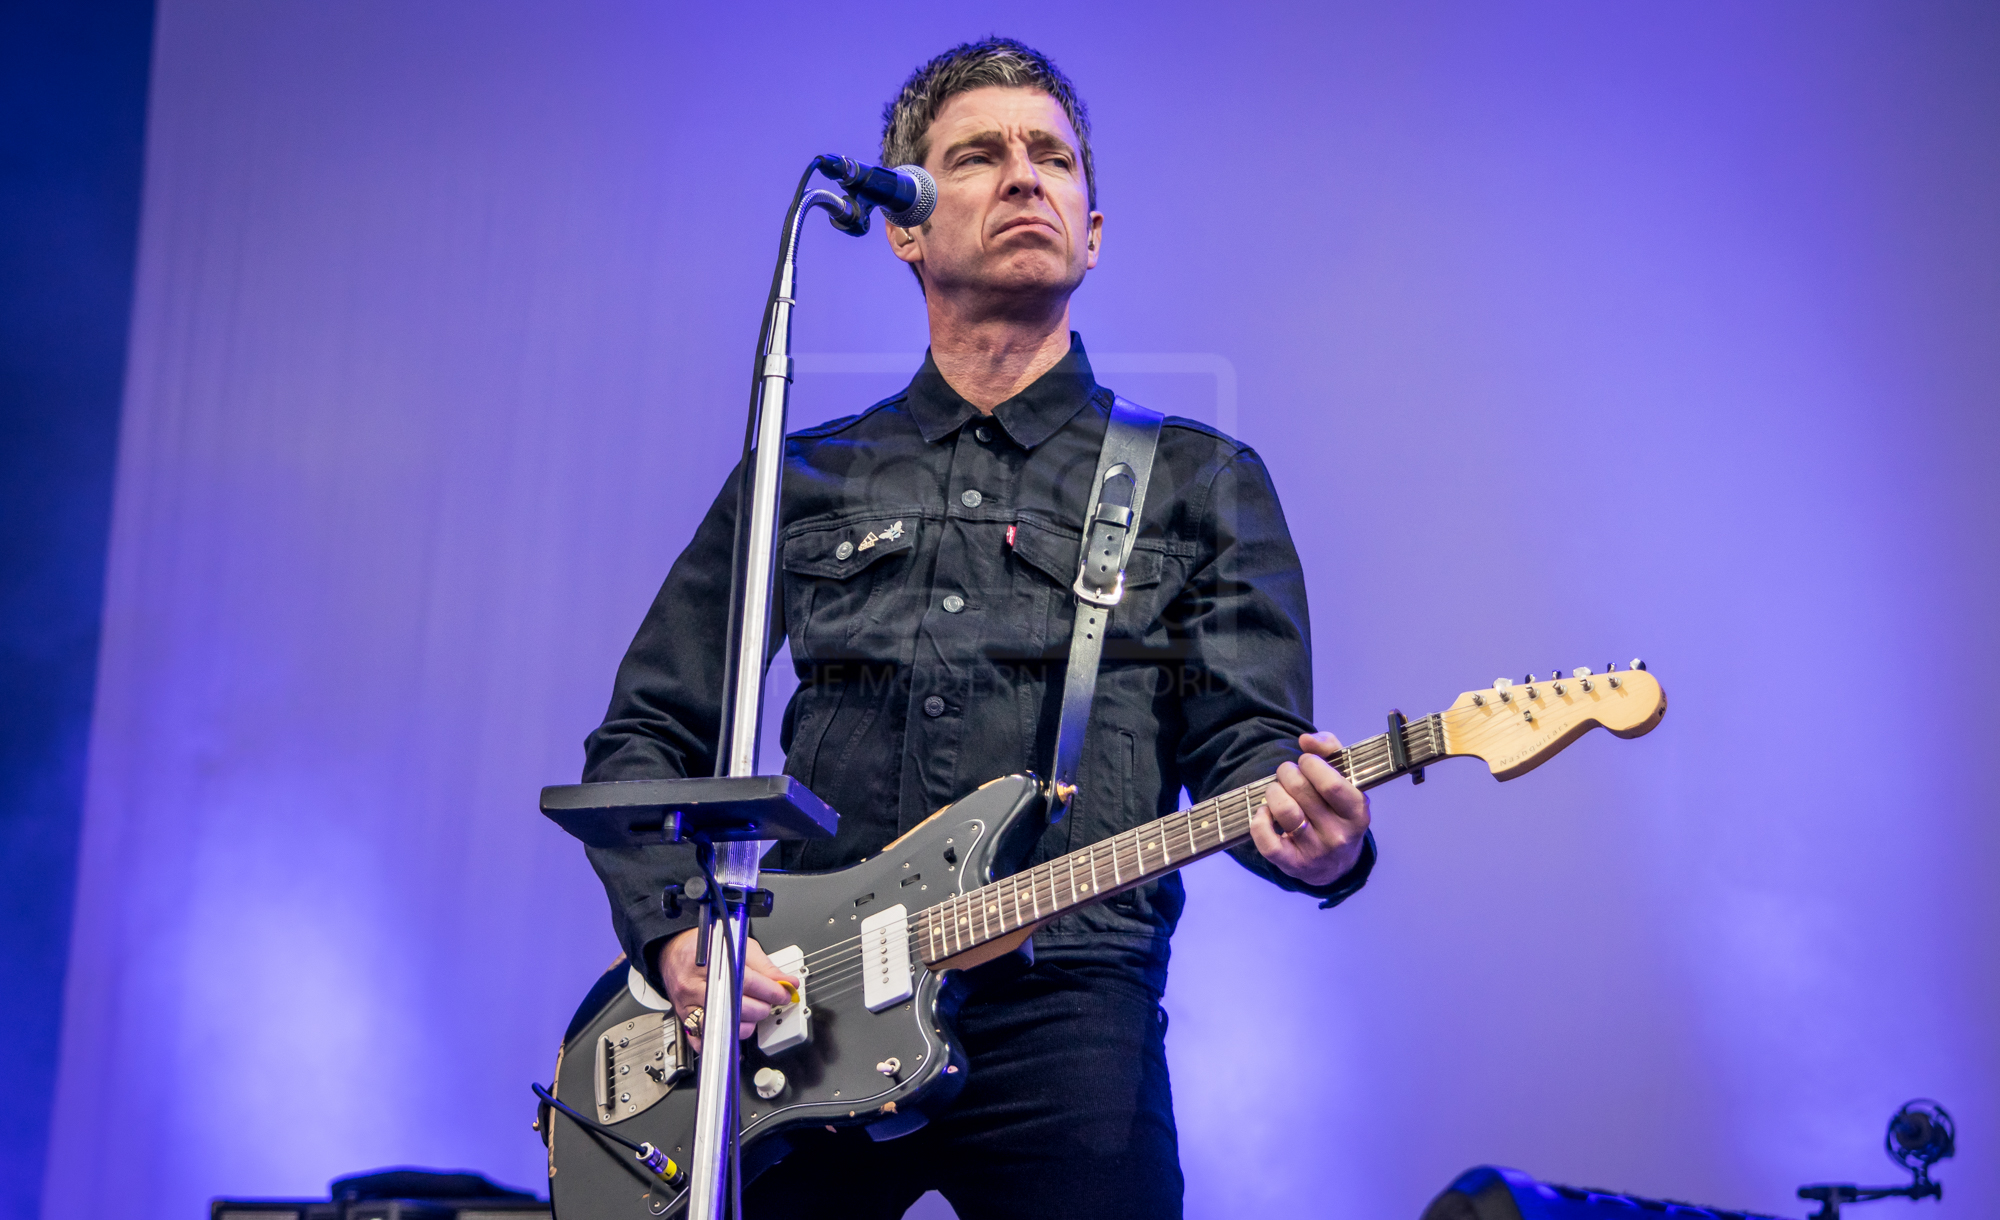 NOEL GALLAGHER'S HIGH FLYING BIRDS PERFORMING AT INVERNESS'S BUGHT PARK - 08.06.2019  PICTURE BY: STEPHEN WILSON PHOTOGRAPHY